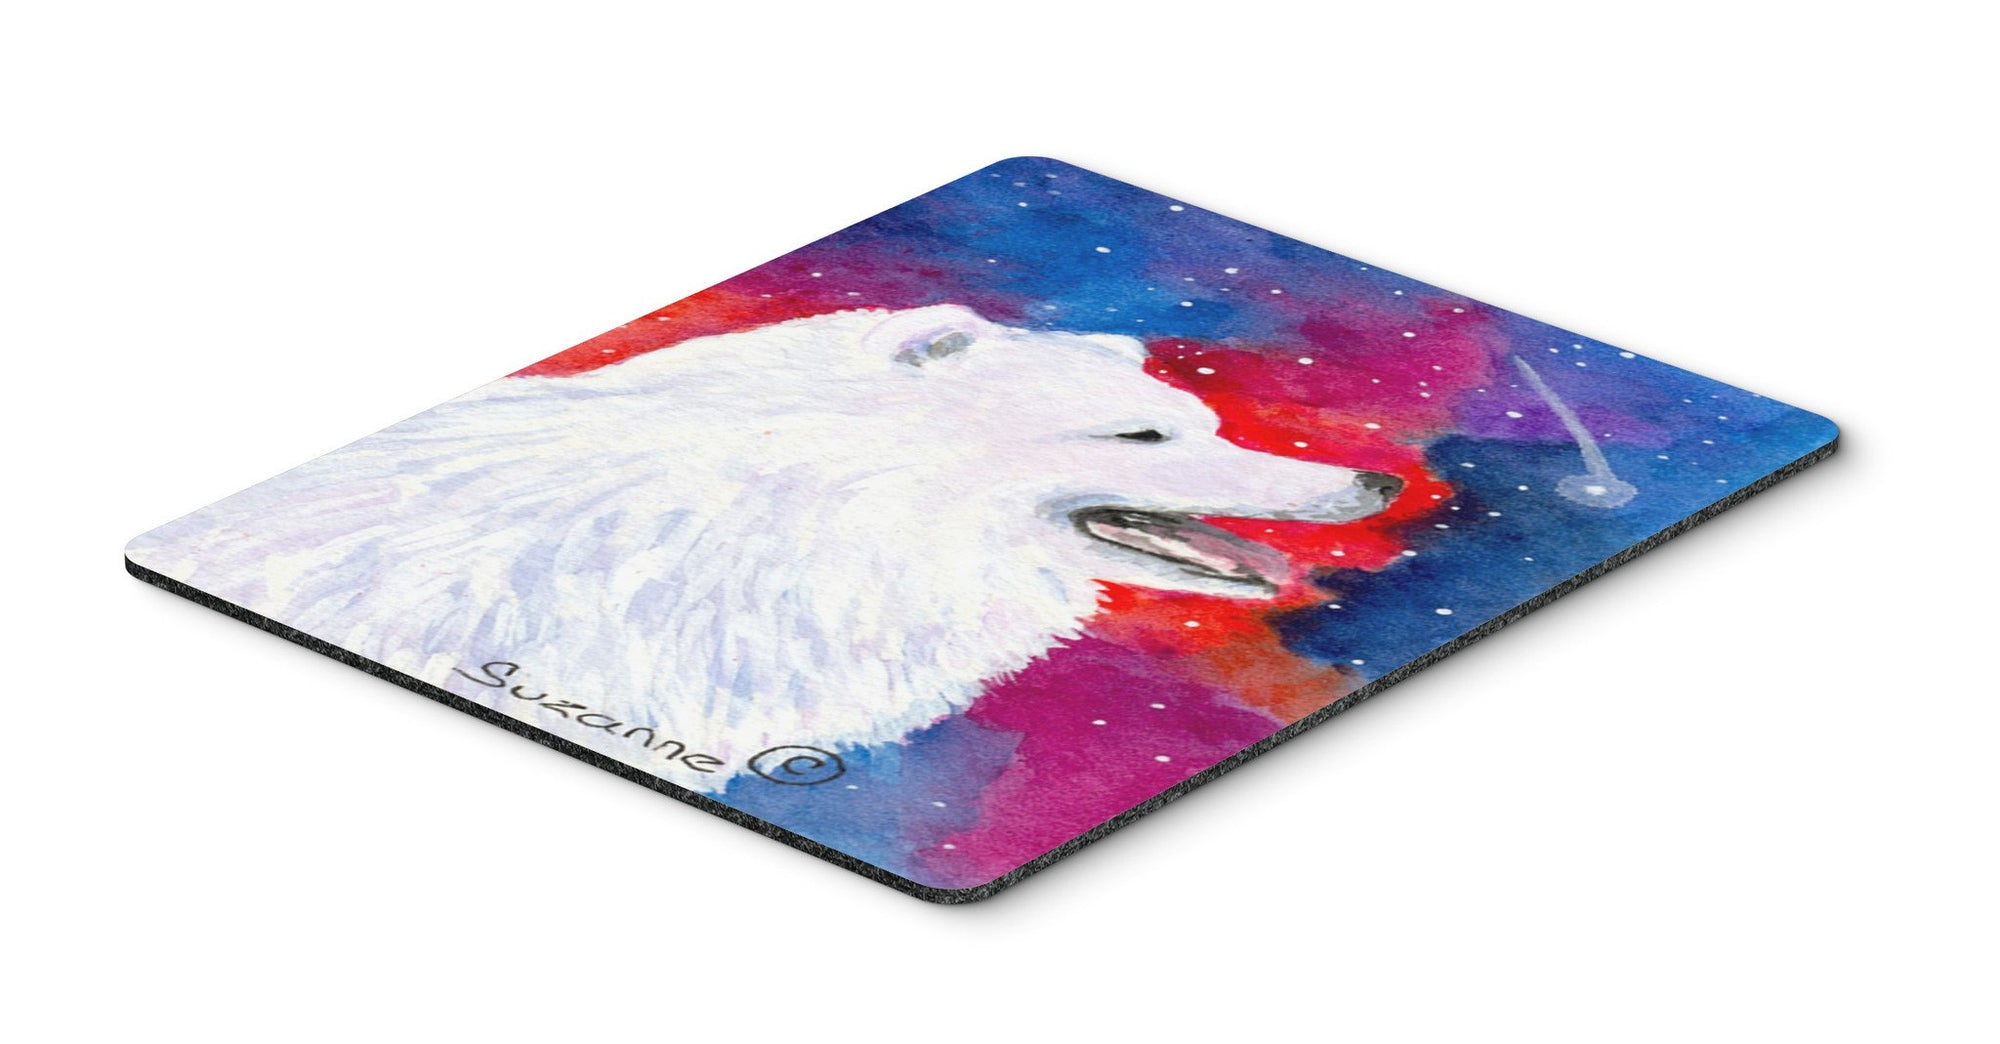 Buy this Samoyed Mouse Pad / Hot Pad / Trivet